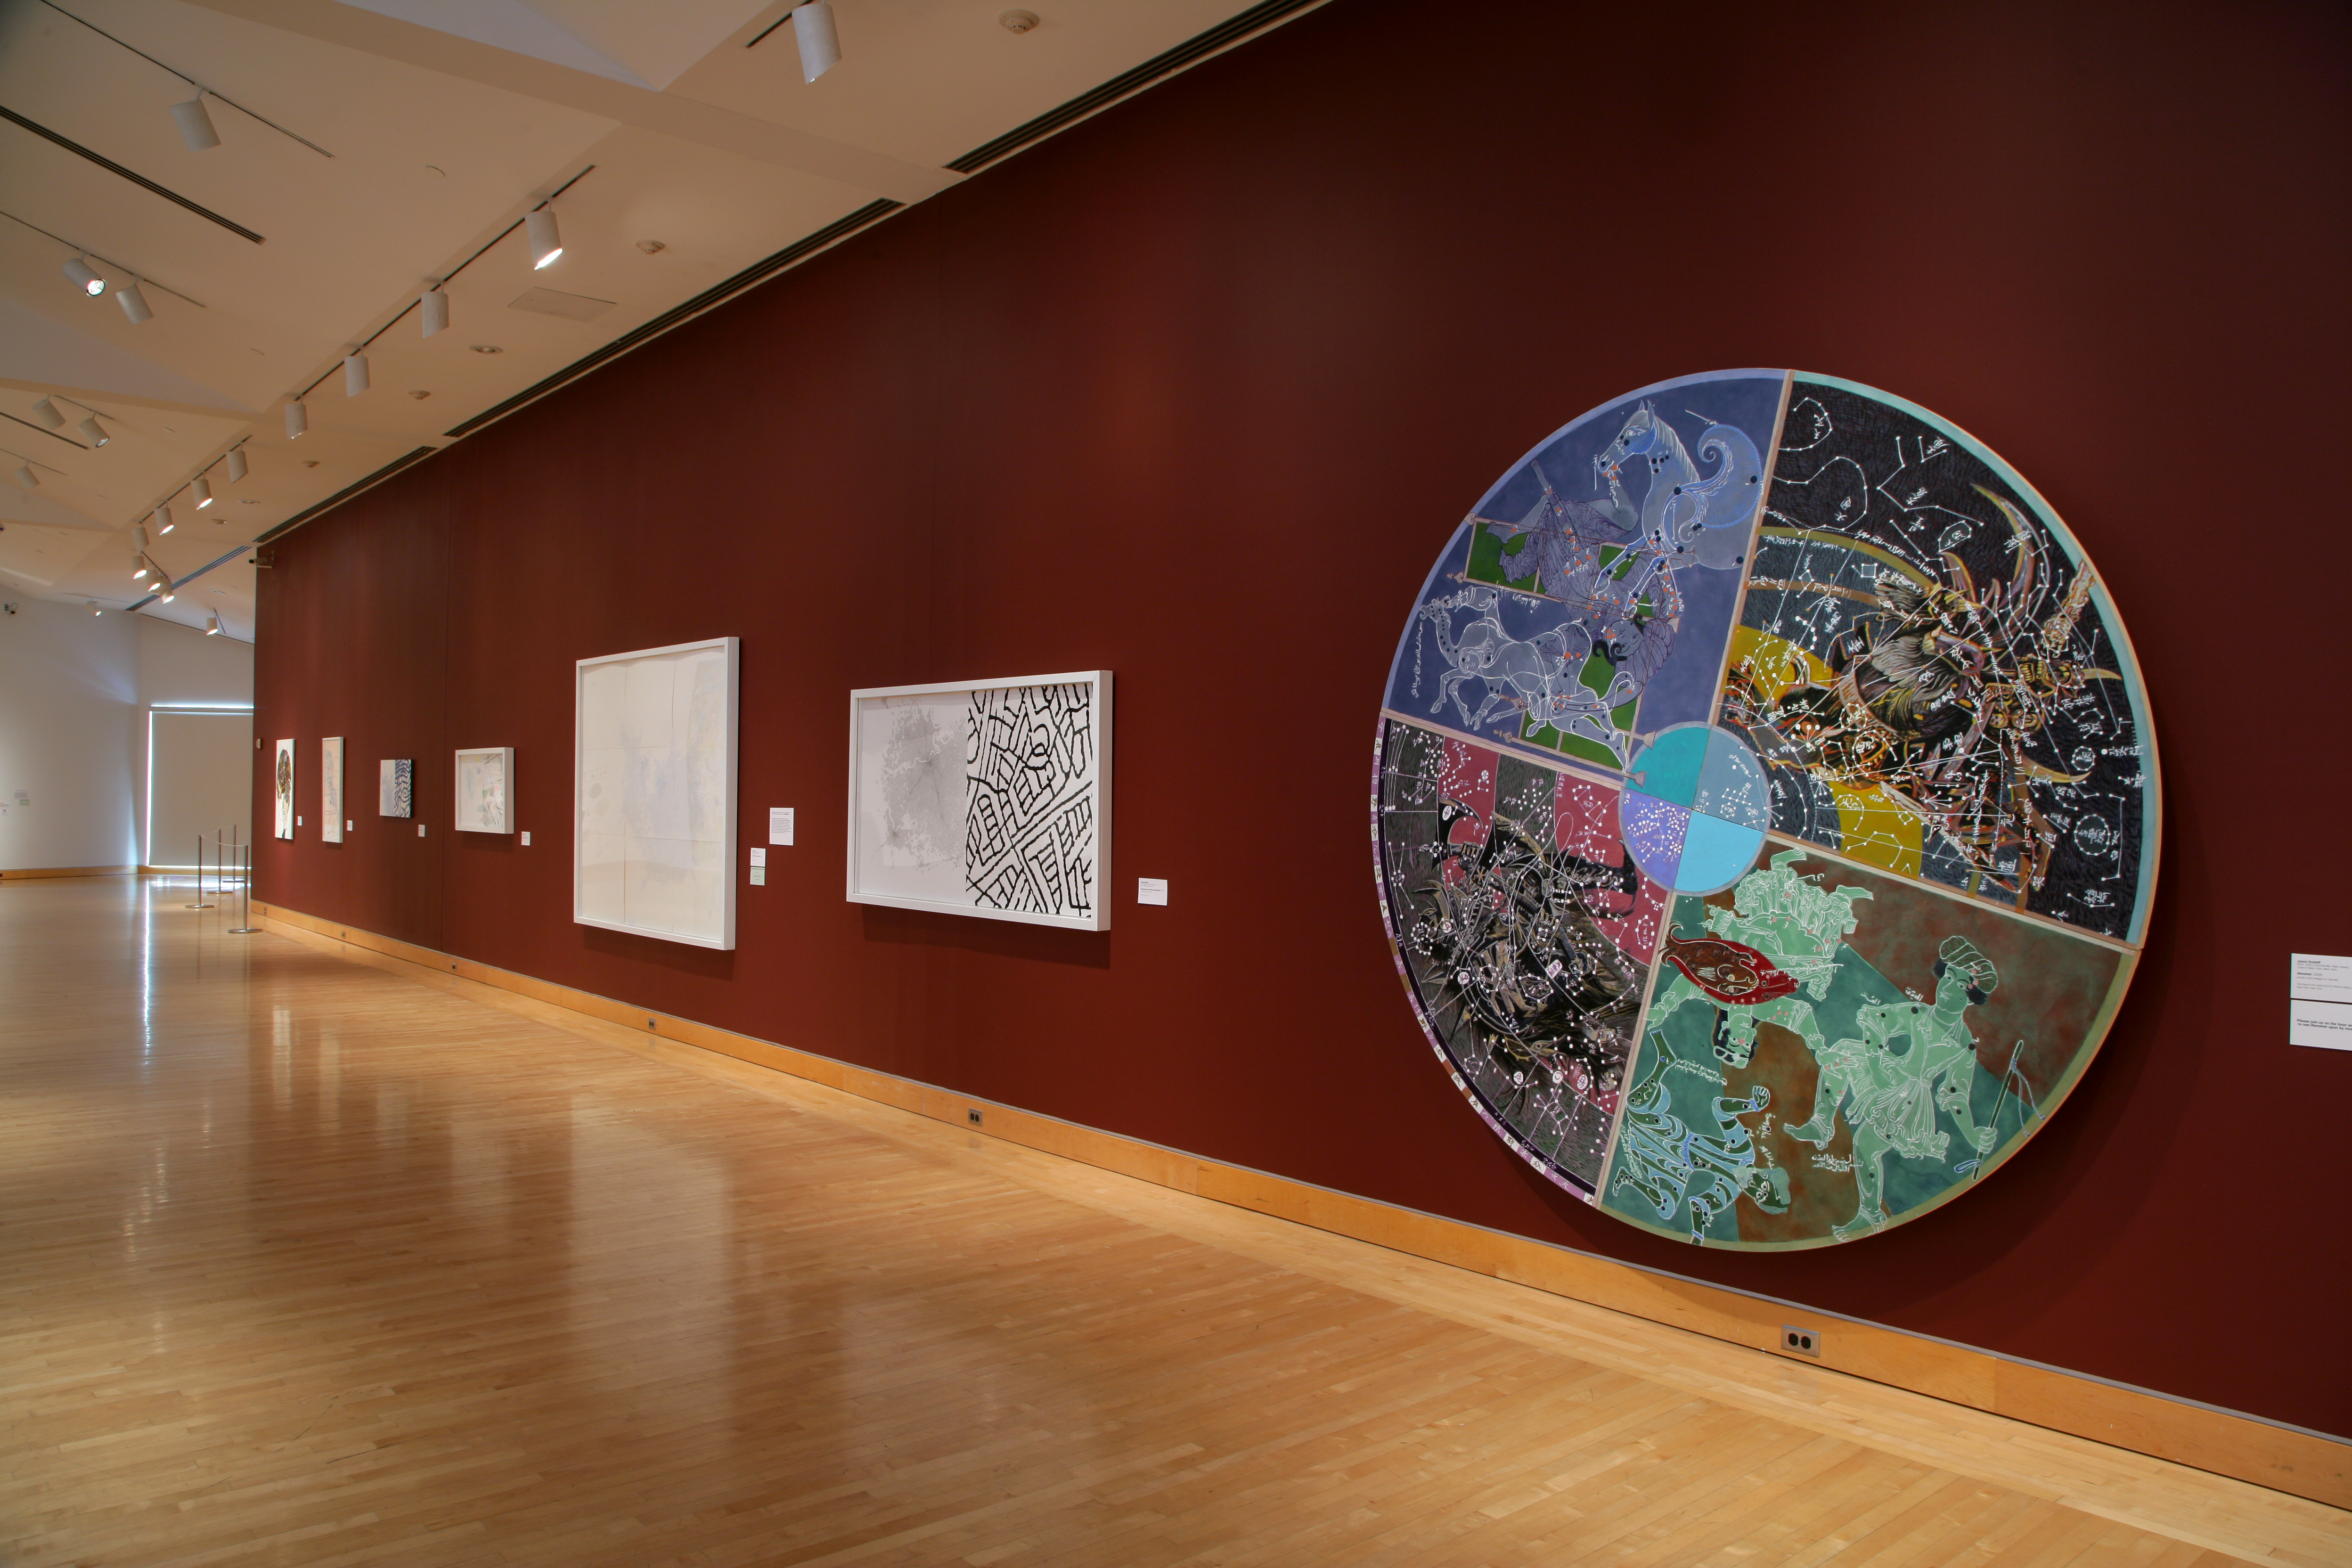 The map as art kemper museum of contemporary art installation view of the map as art in the charlotte and crosby kemper gallery kemper museum of contemporary art photo bruce mathews gumiabroncs Gallery